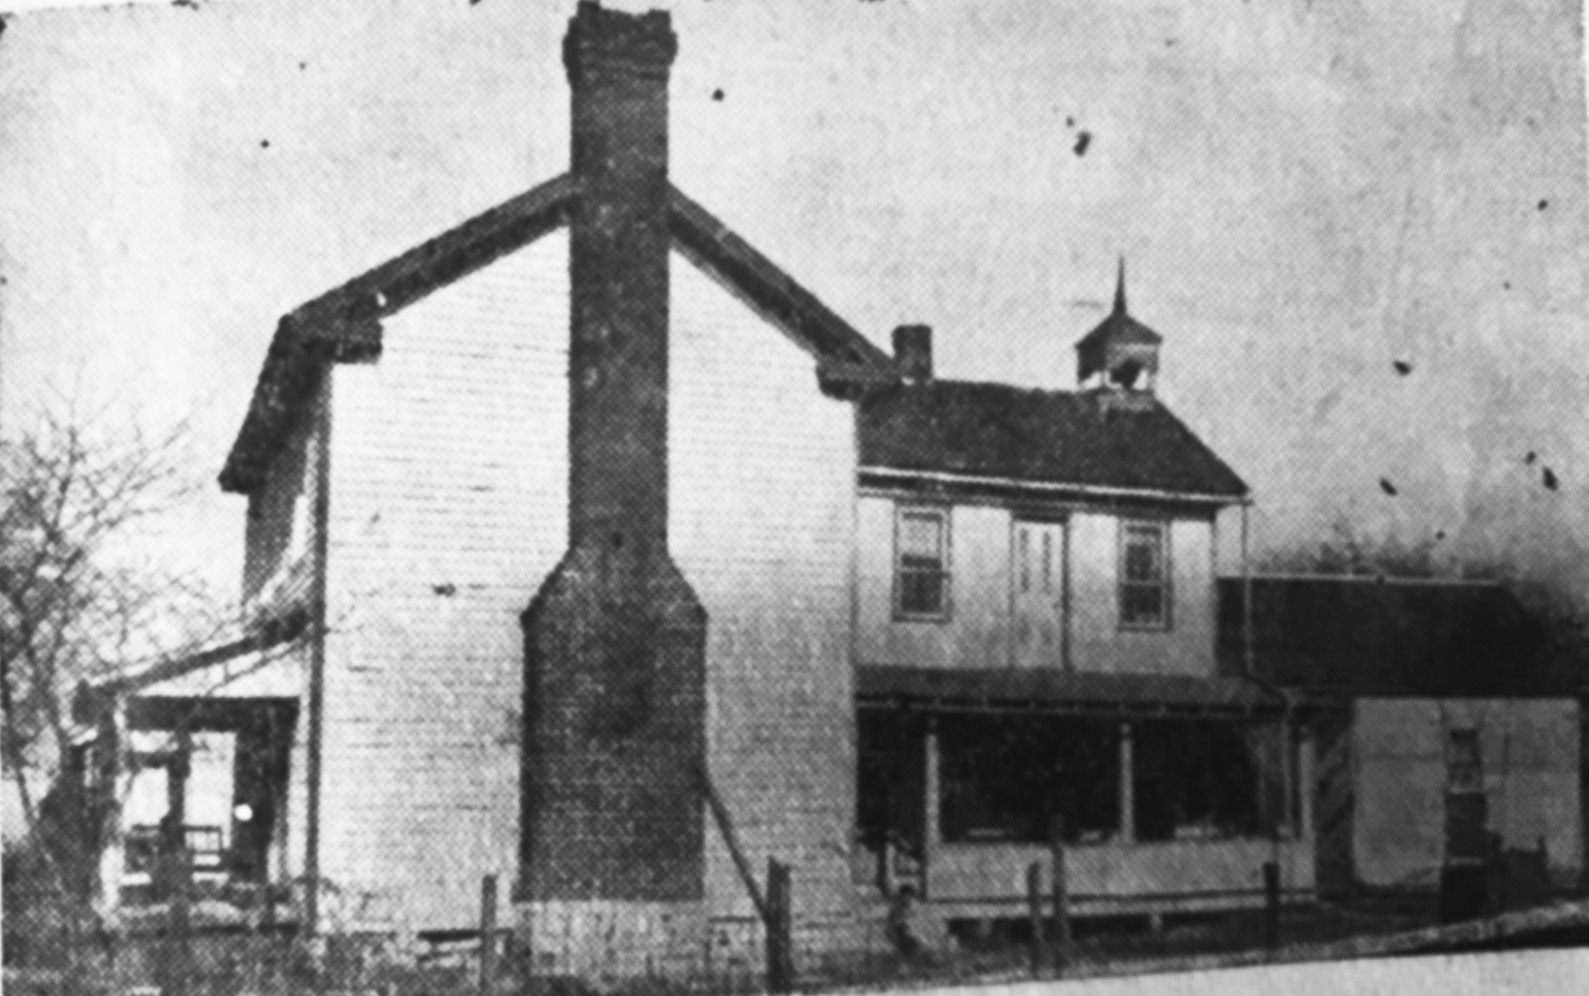 The former Ezra Kern tavern house in Fayetteville was in a good condition when the Indianapolis Sun Star printed the picture in 1941. Located near the intersection of current Old Farm Road and State Road 158, the house was razed in the early 1970s.